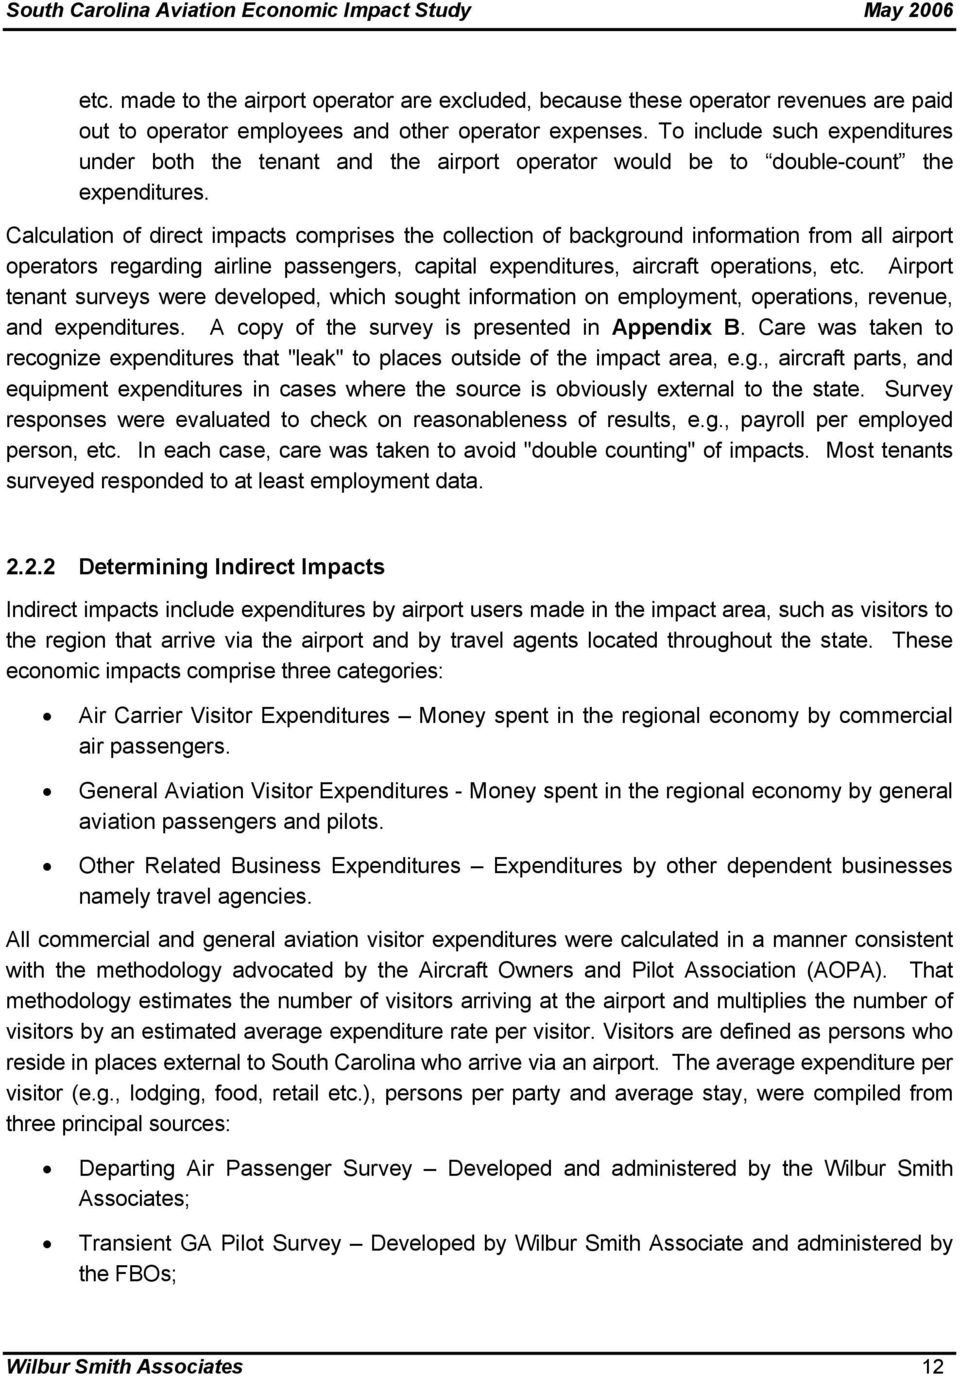 Calculation of direct impacts comprises the collection of background information from all airport operators regarding airline passengers, capital expenditures, aircraft operations, etc.